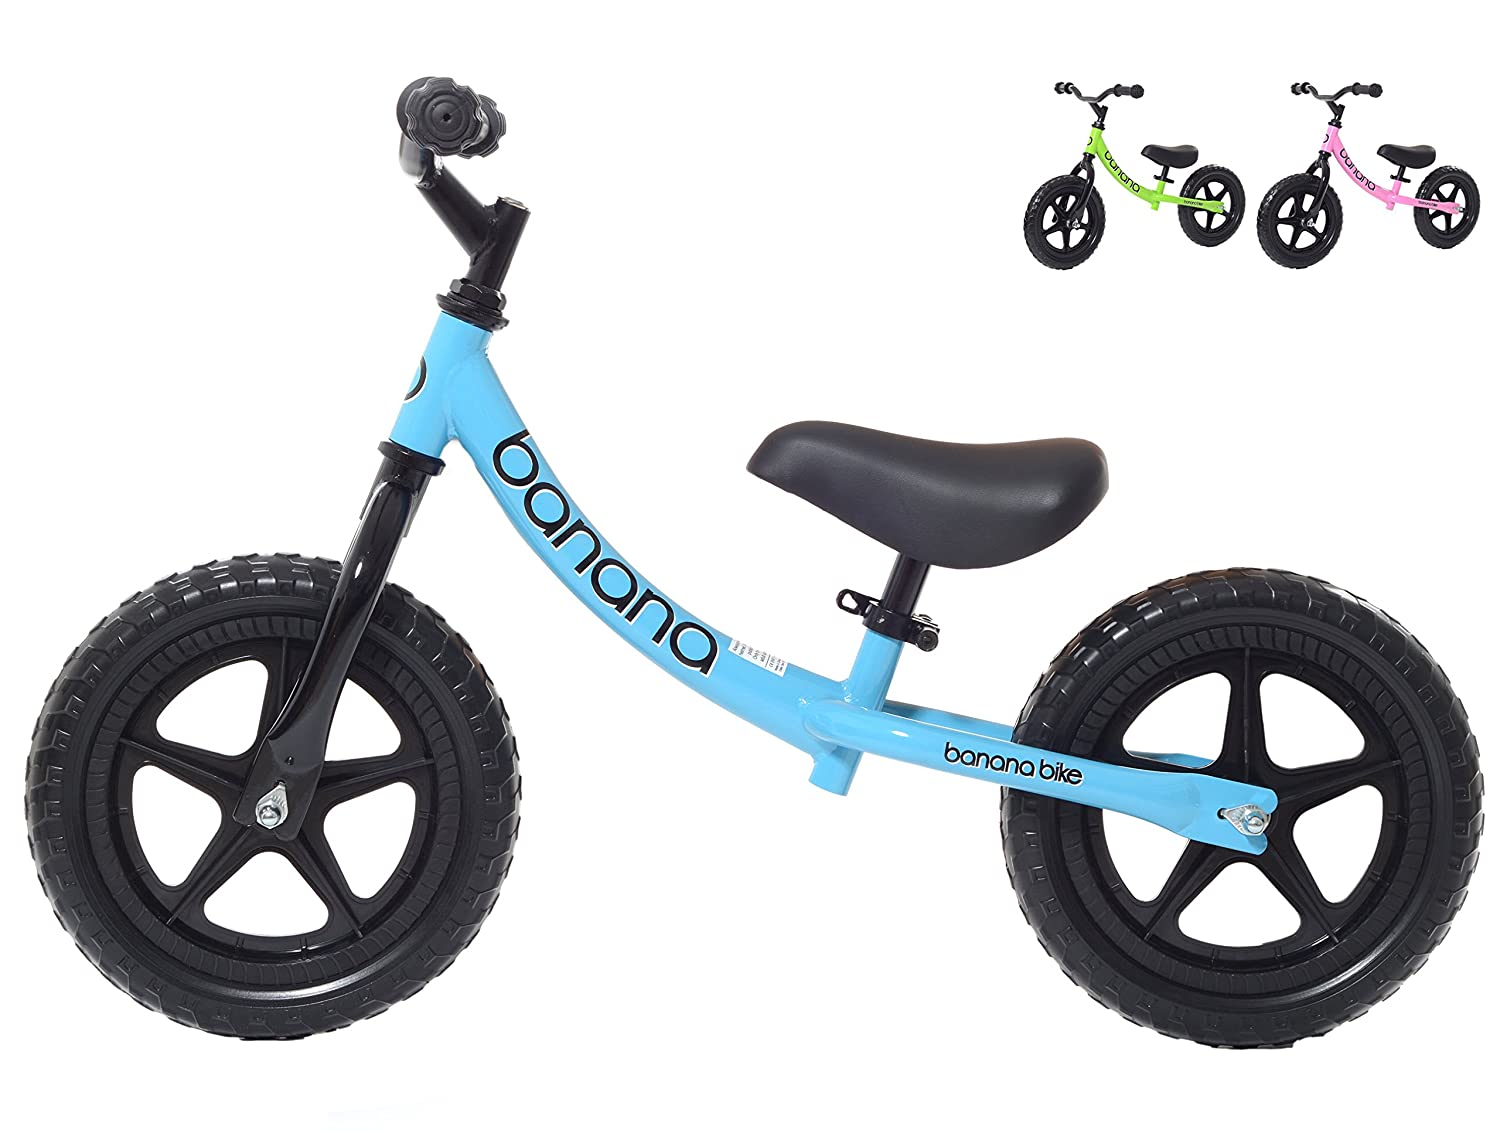 Banana Balance Bike for Kids Image